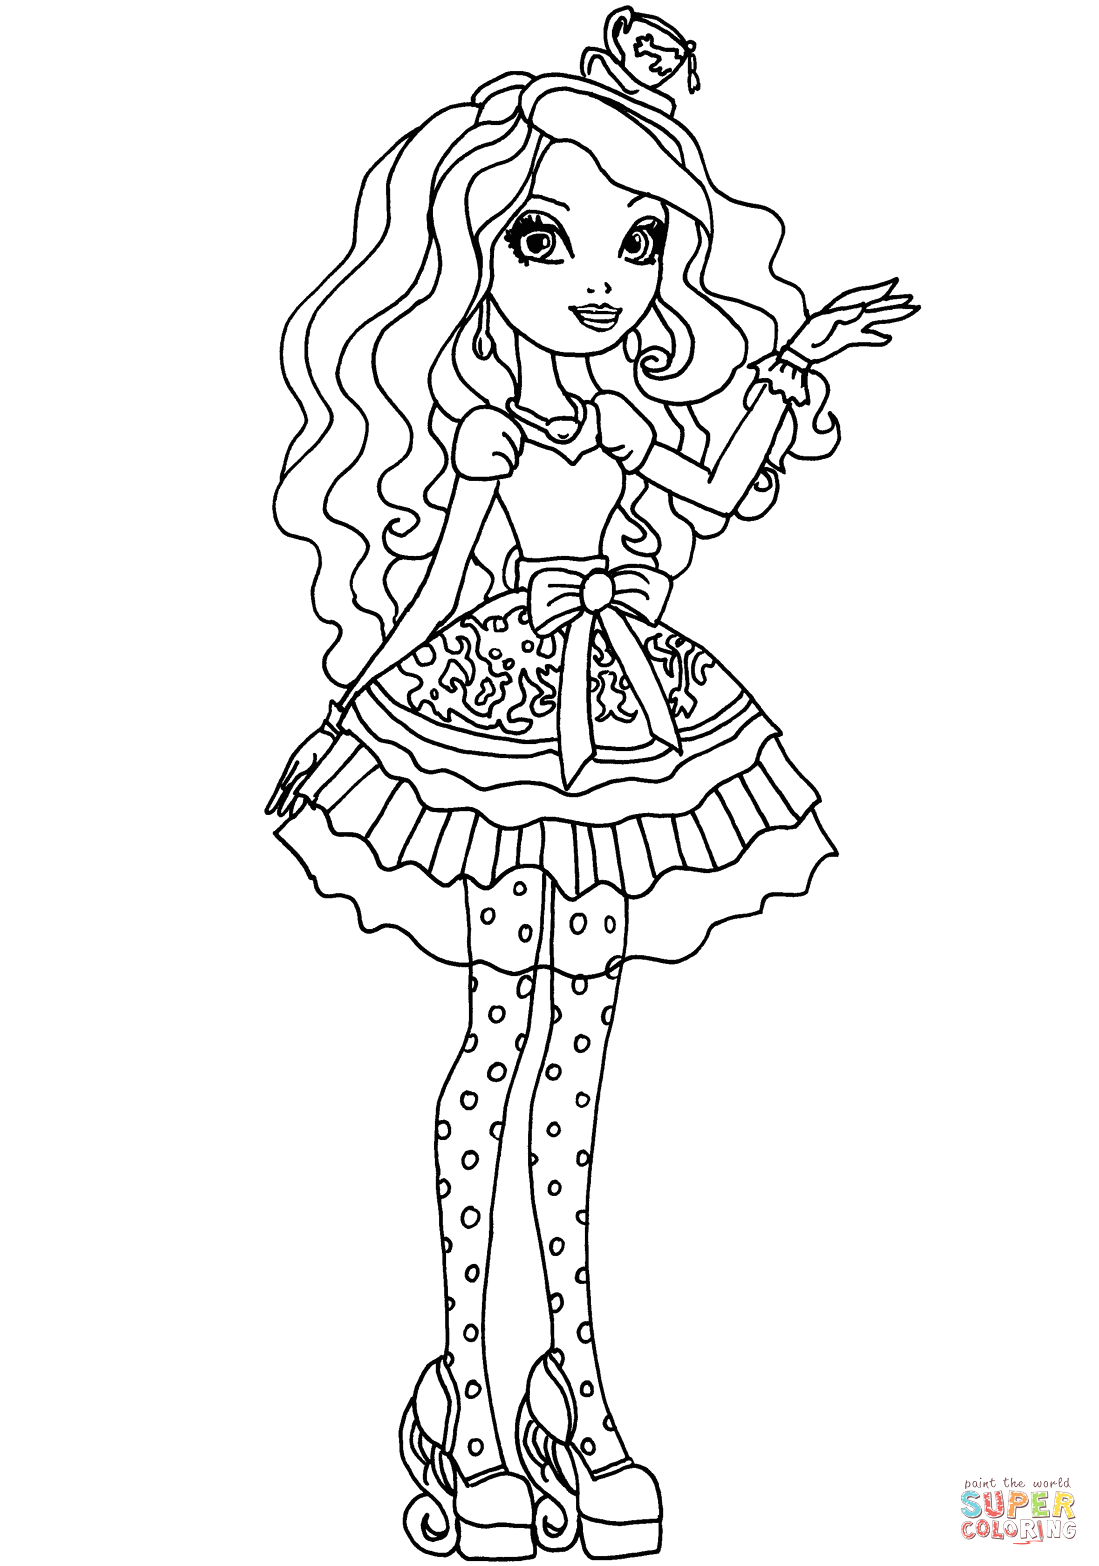 Ever after High Madeline Hatter Coloring Pages Ever after High Madeline Hatter Coloring Page